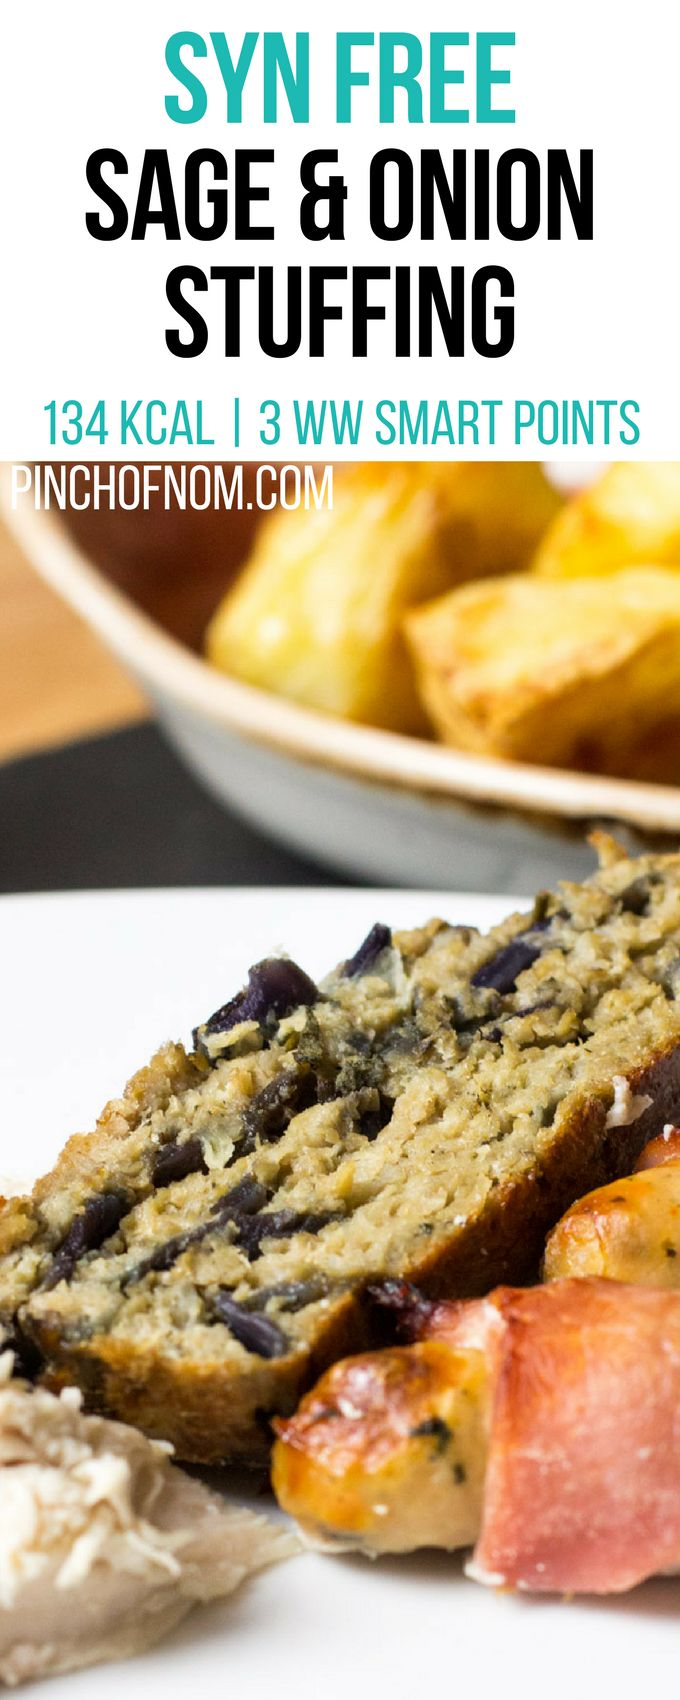 Syn Free Sage And Onion Stuffing | Pinch Of Nom Slimming World Recipes 134 kcal | Syn Free | 3 Weight Watchers Smart Points